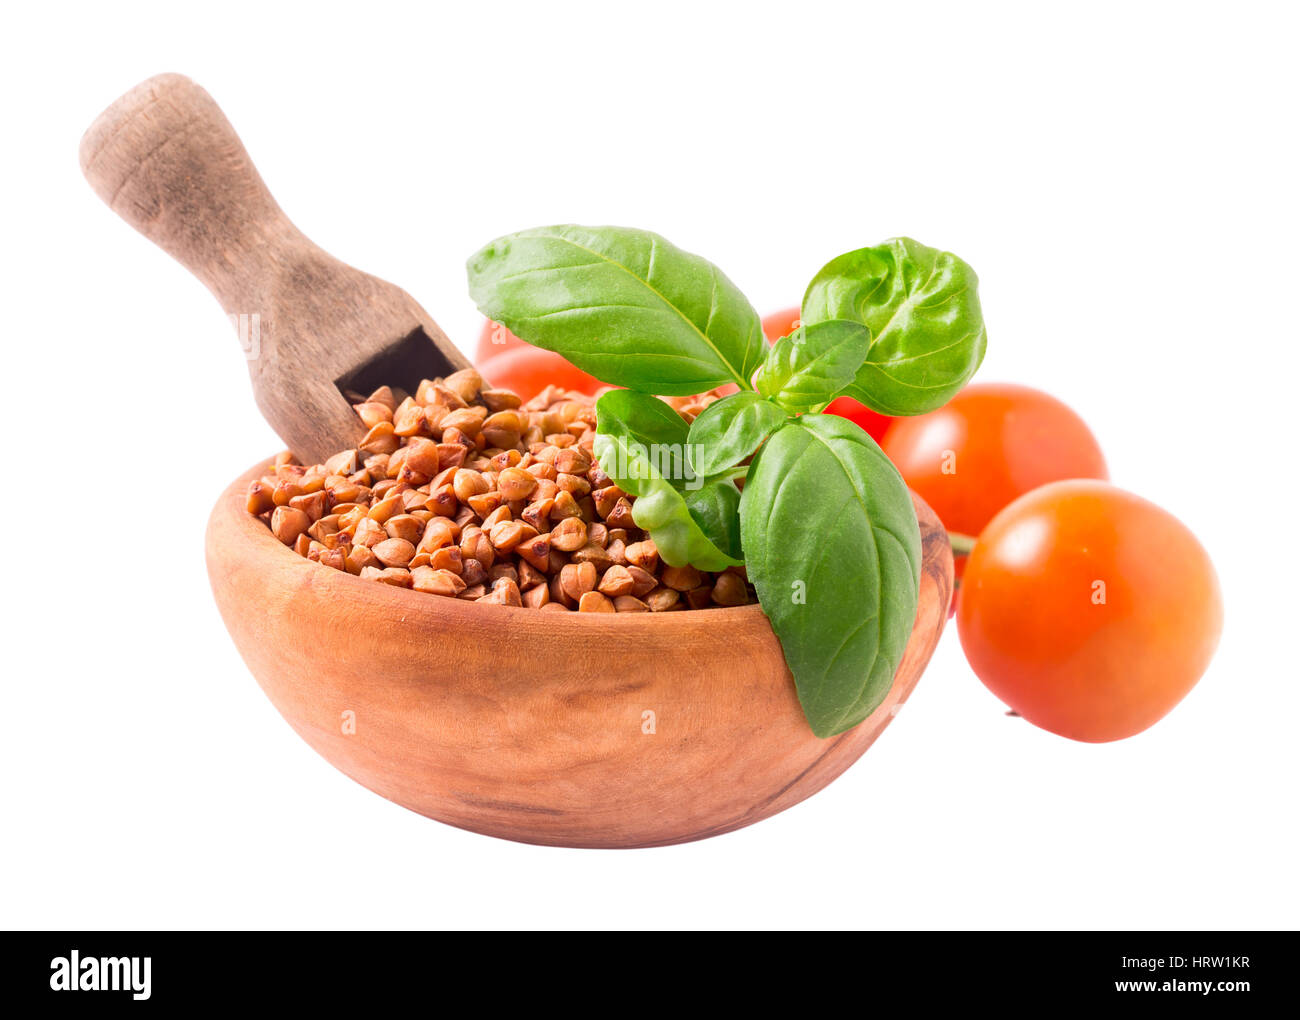 Wooden bowl of uncooked buckwheat groats with scoop and basil leaves. Isolated on white background - Stock Image